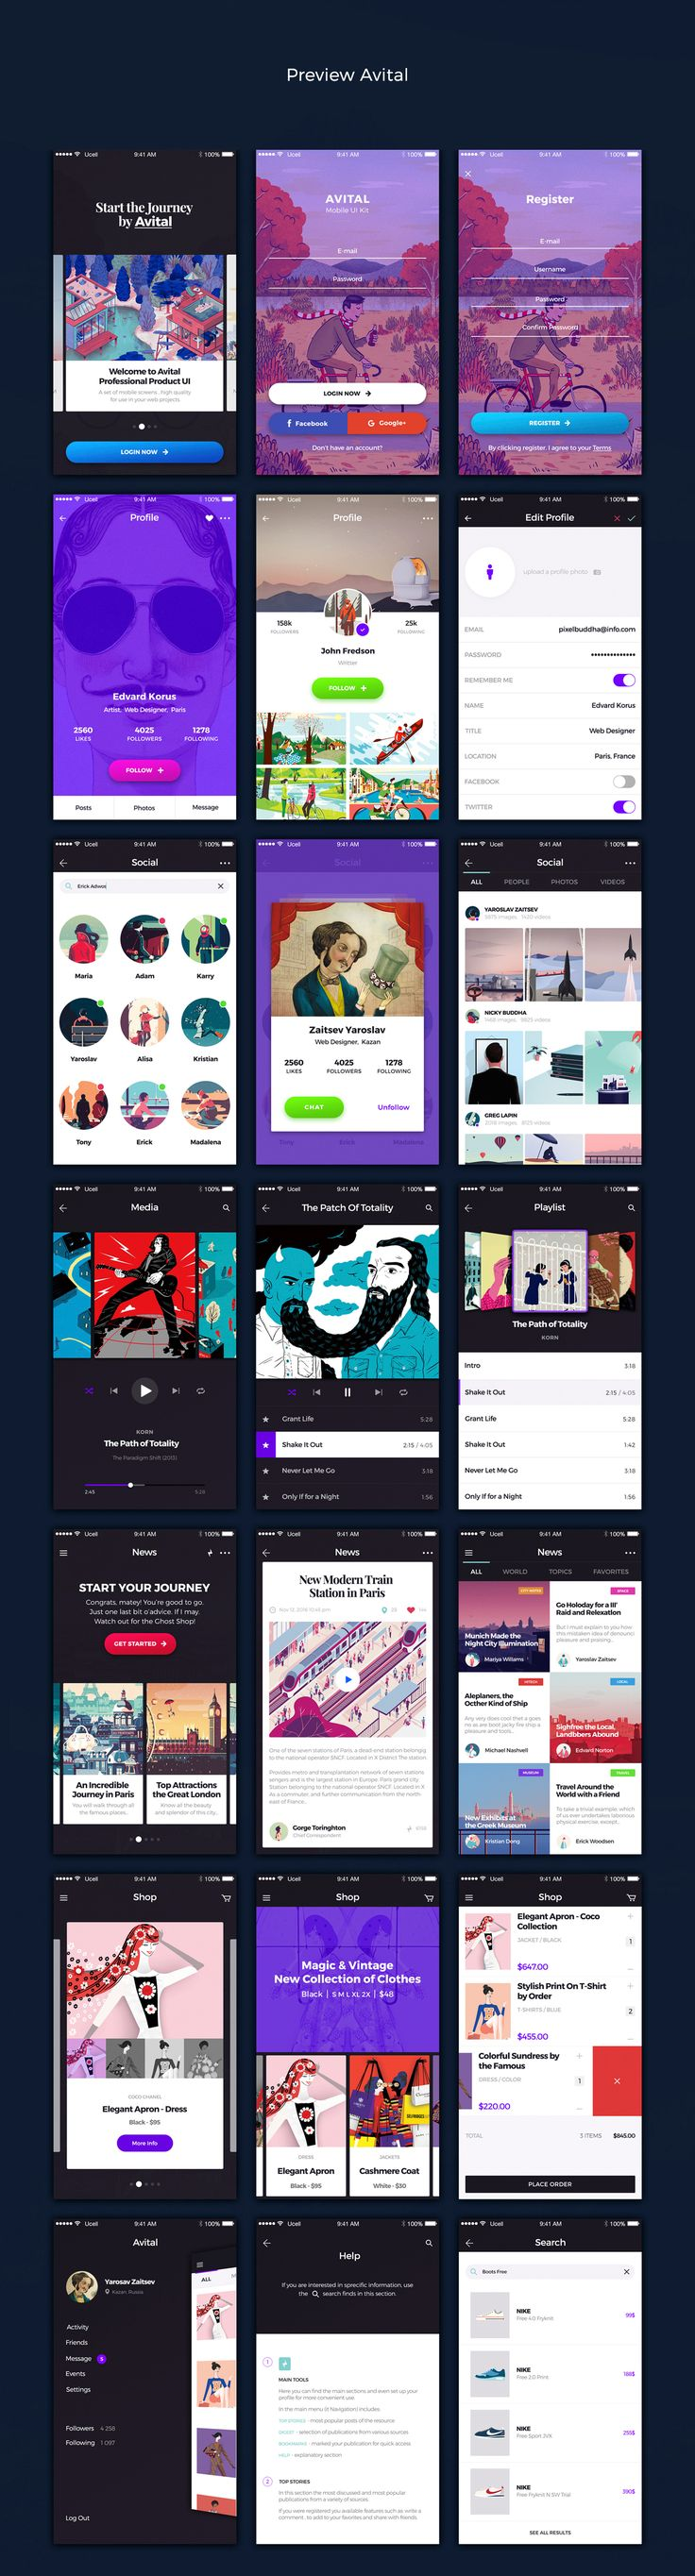 FREEBIE: Avital Mobile UI Kit +21 FREE DOWNLOAD FILES on Behance